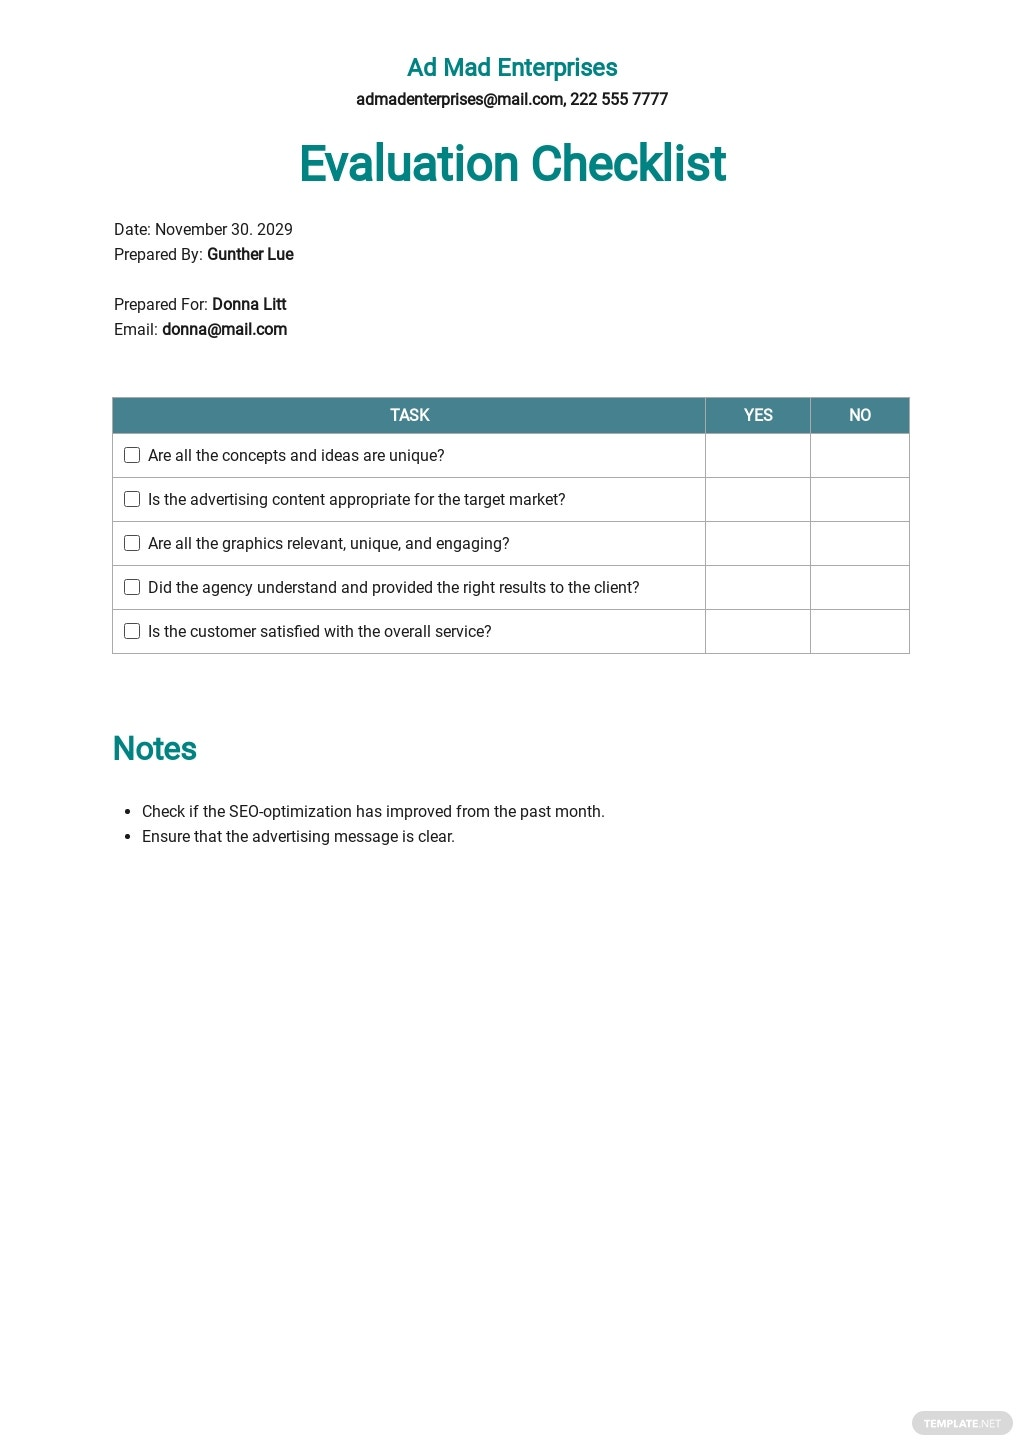 Advertising Agency Evaluation Checklist Template